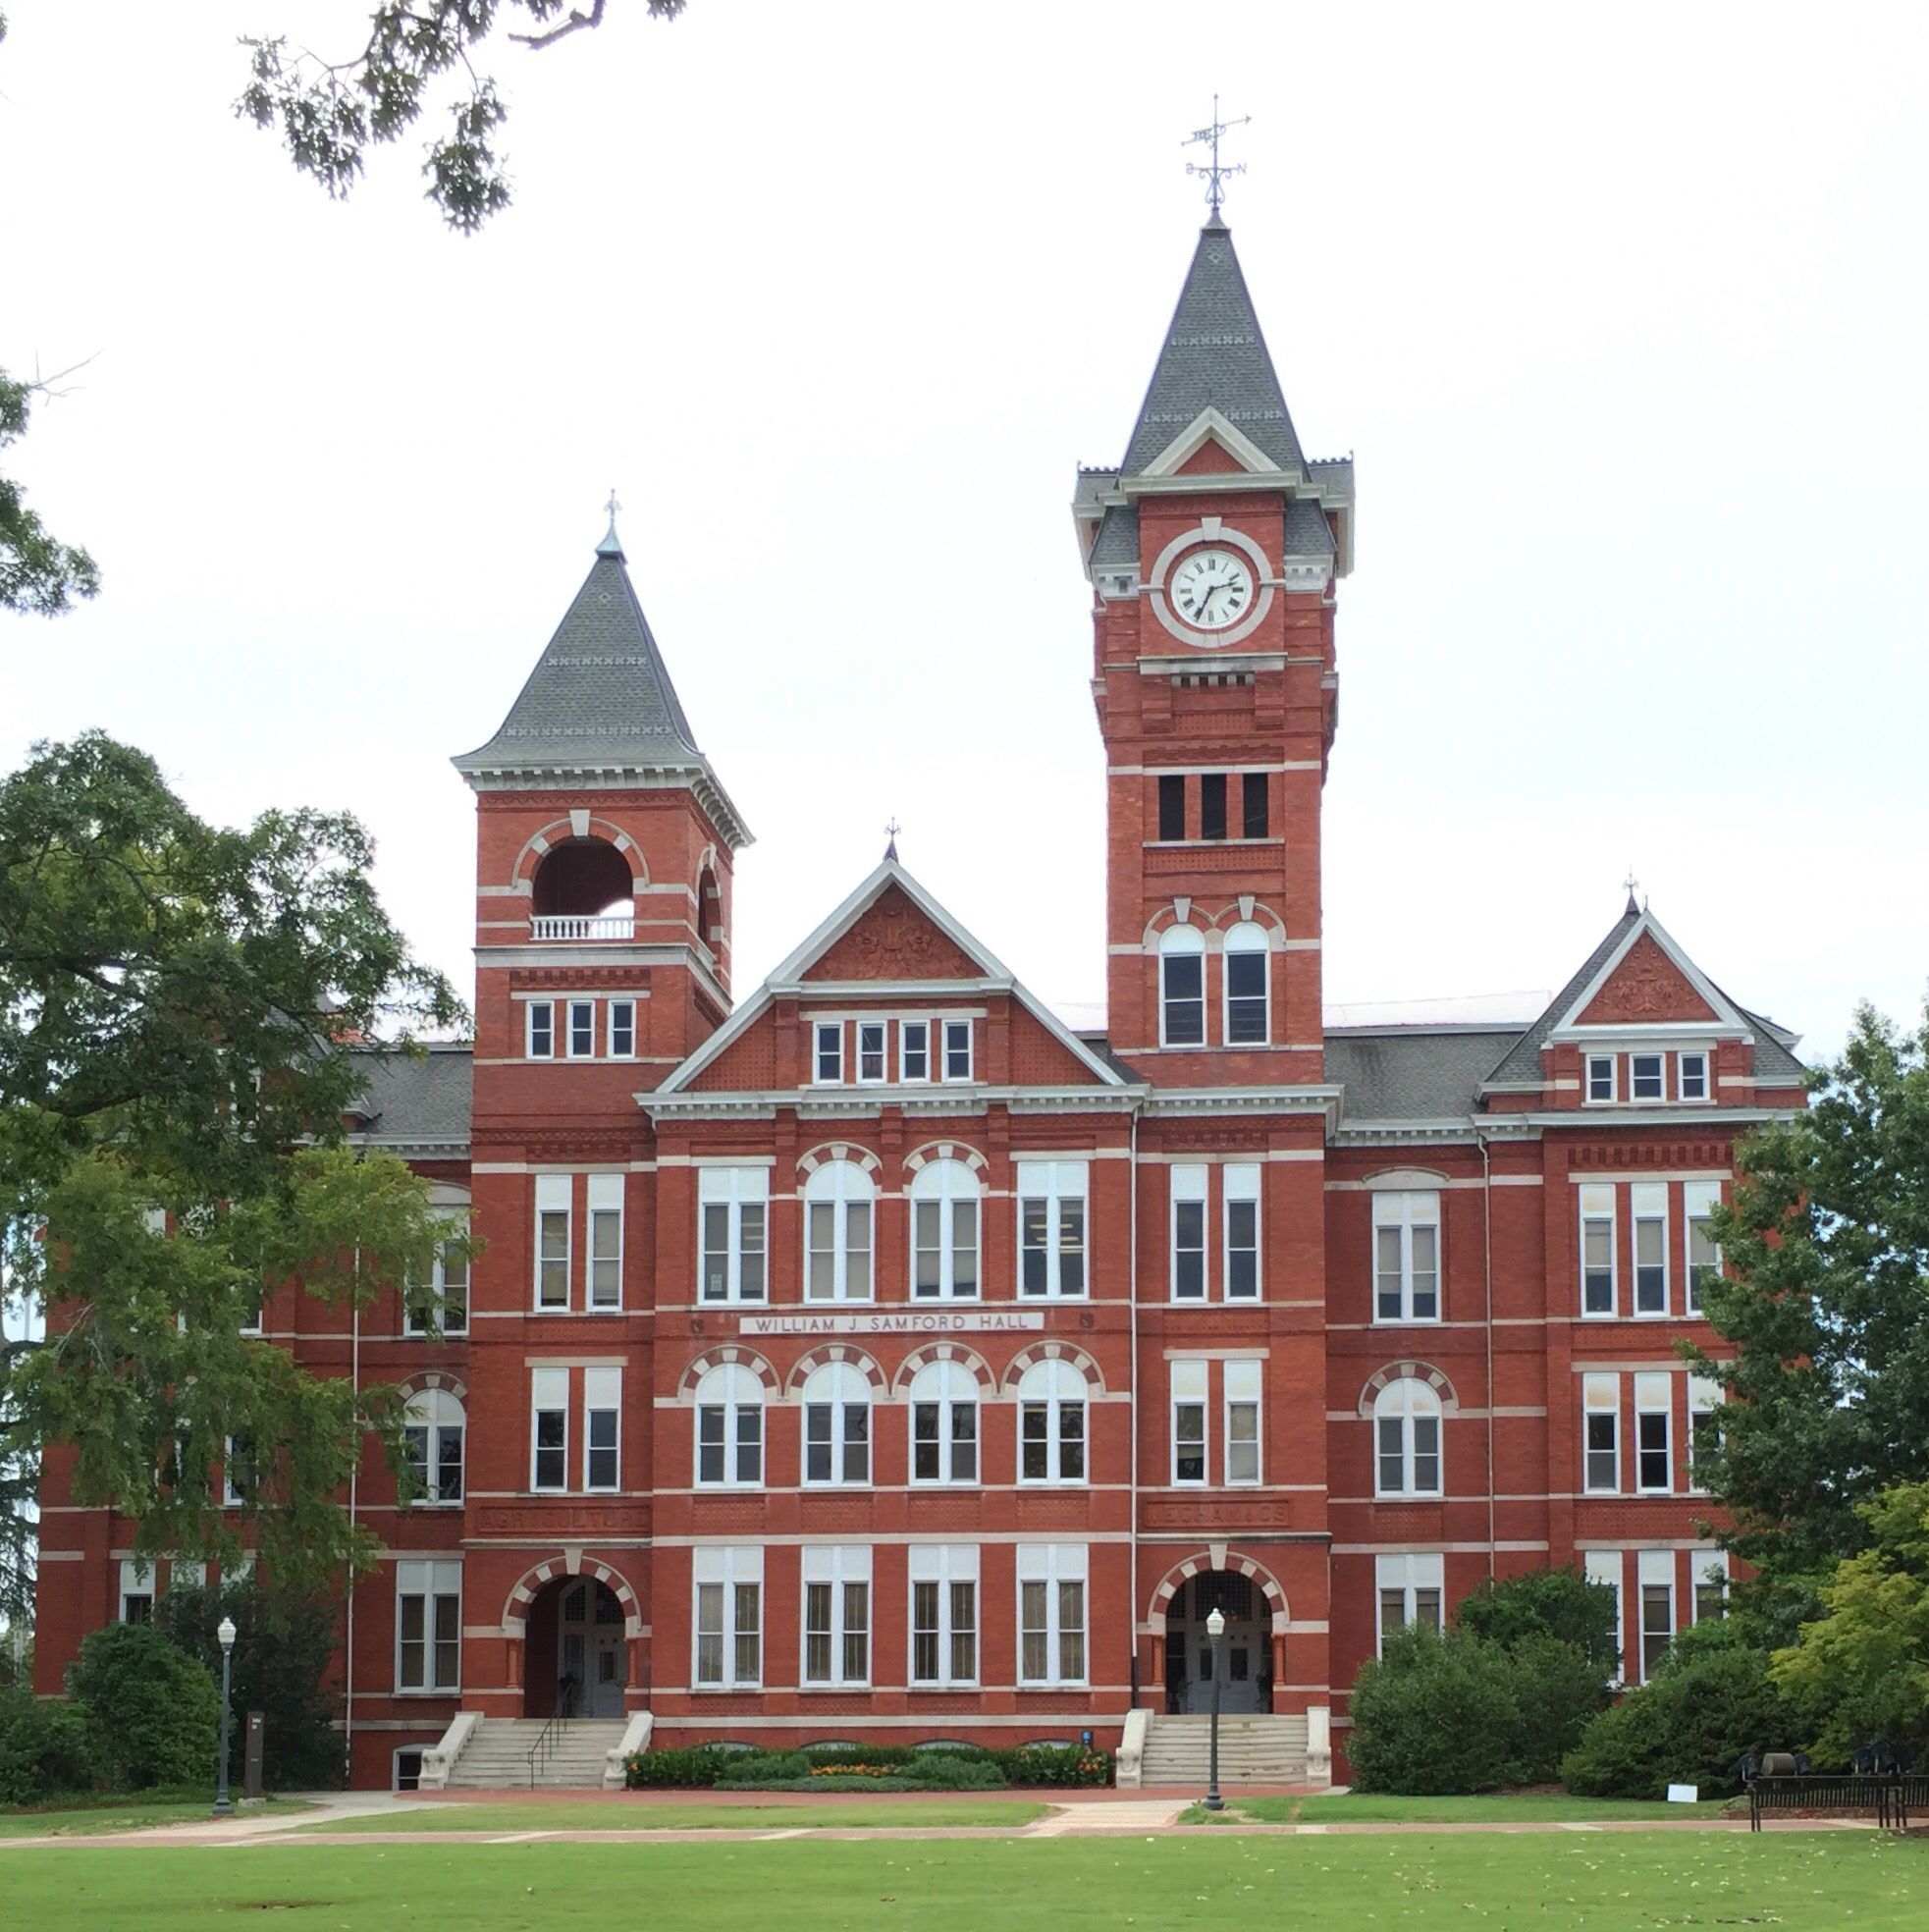 Samford Hall Auburn University The original building on this site was Old Main